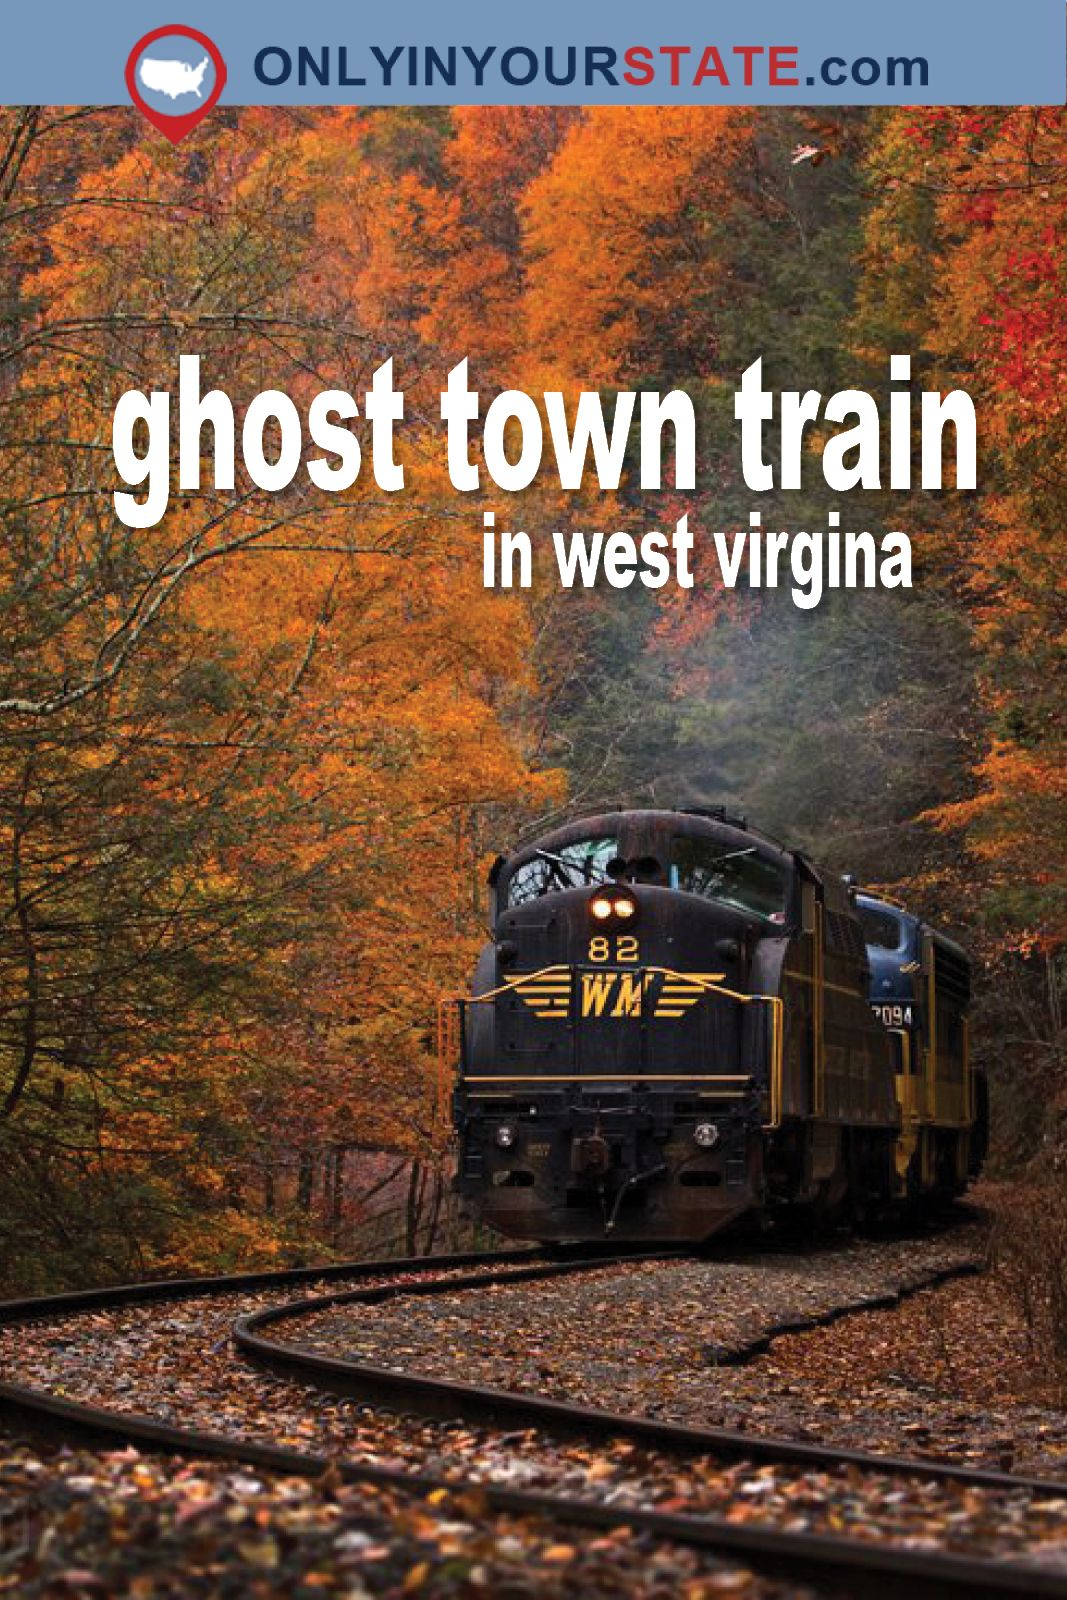 Take This Haunting Train Ride Through A West Virginia Ghost Town